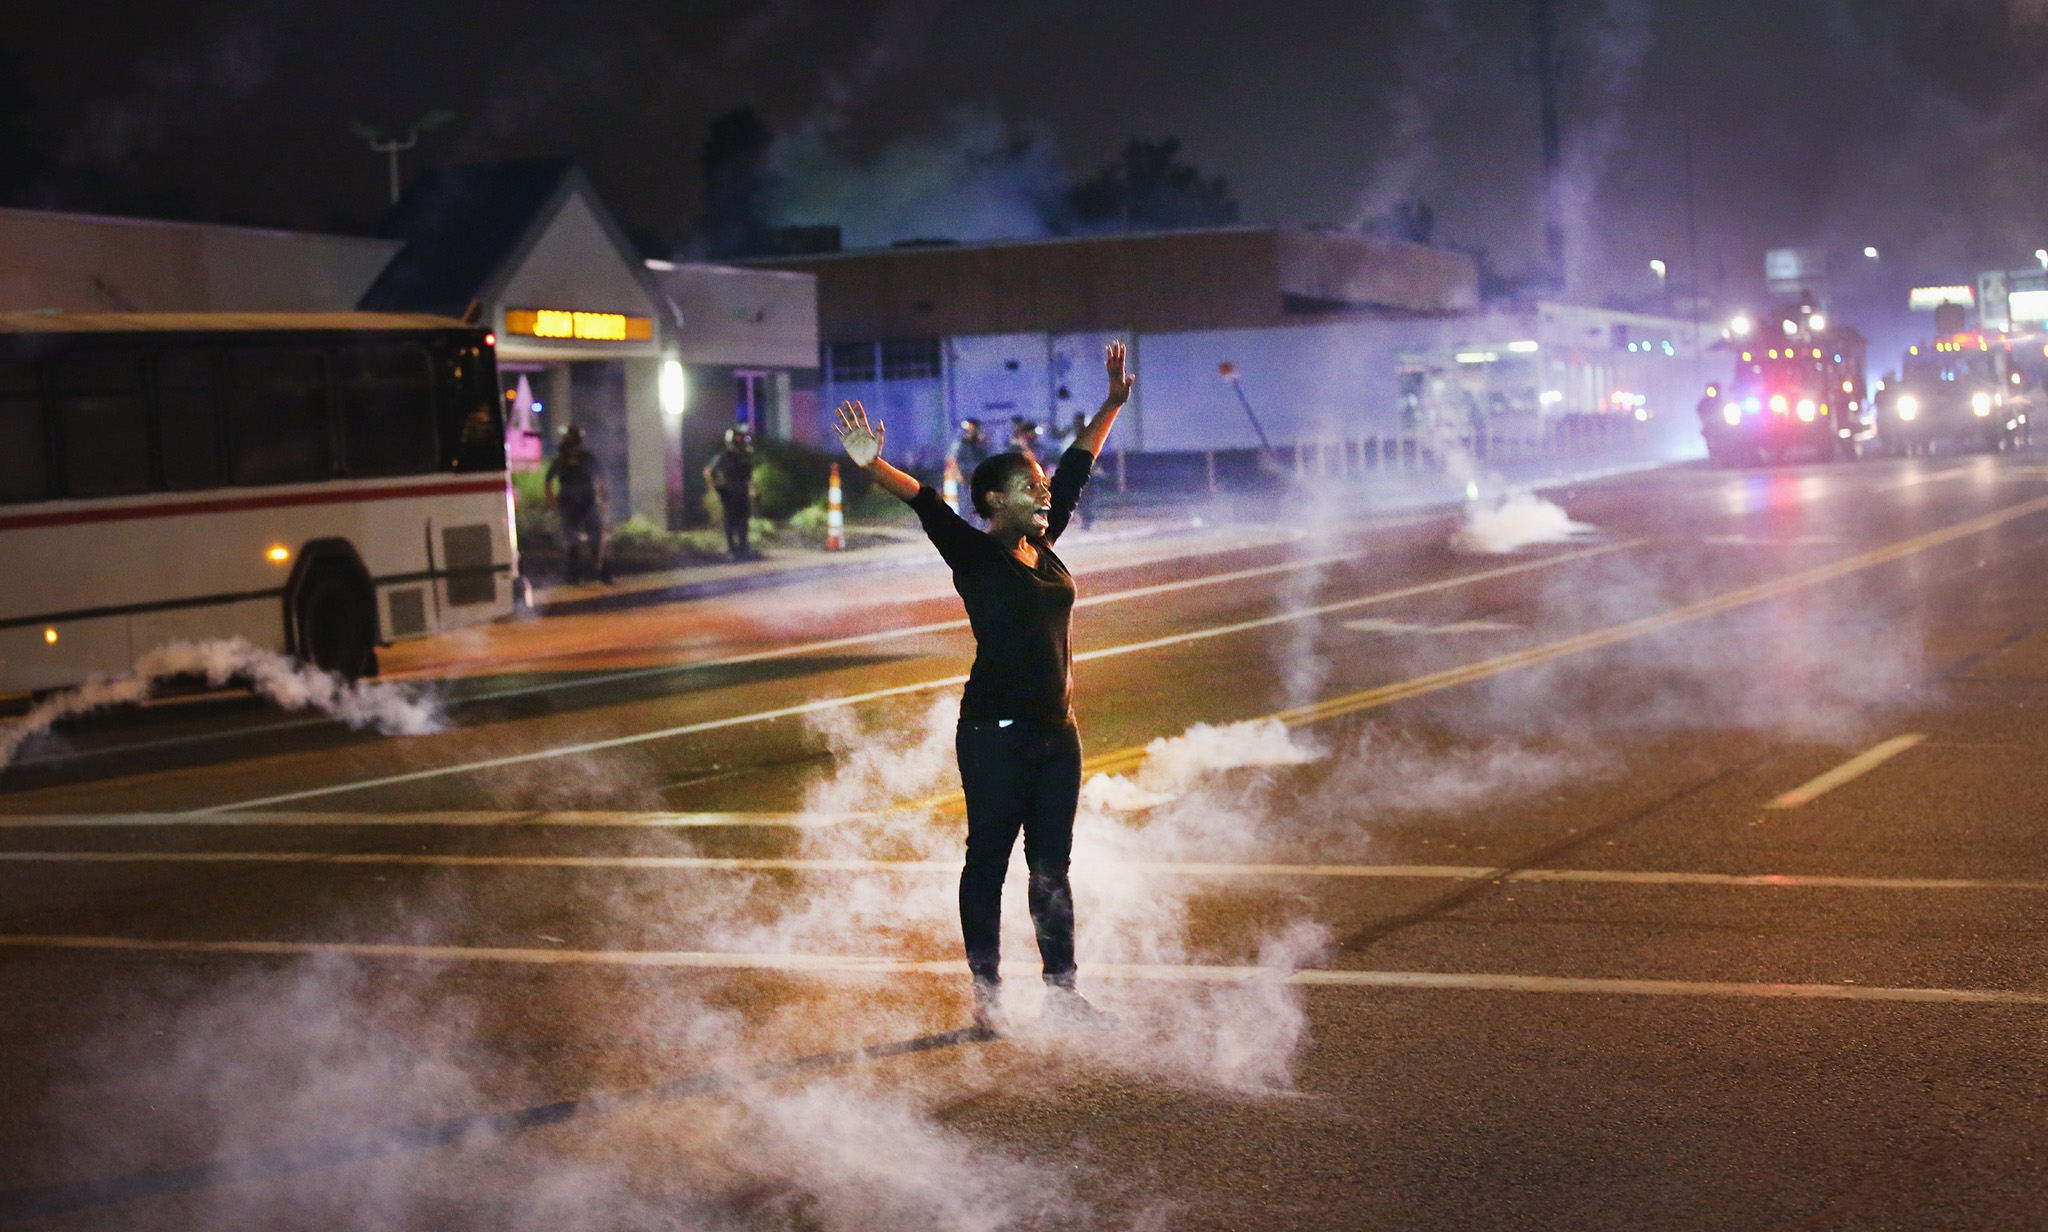 Outrage In Missouri Town After Police Shooting Of 18-Yr-Old Man...FERGUSON, MO - AUGUST 17:  Tear gas reigns down on a woman standing with her arms raised in the street after a demonstration over the killing of teenager Michael Brown by a Ferguson police on August 17, 2014 in Ferguson, Missouri. Despite the Brown family's continued call for peaceful demonstrations, violent protests have erupted nearly every night in Ferguson since his August 9, death.  (Photo by Scott Olson/Getty Images)